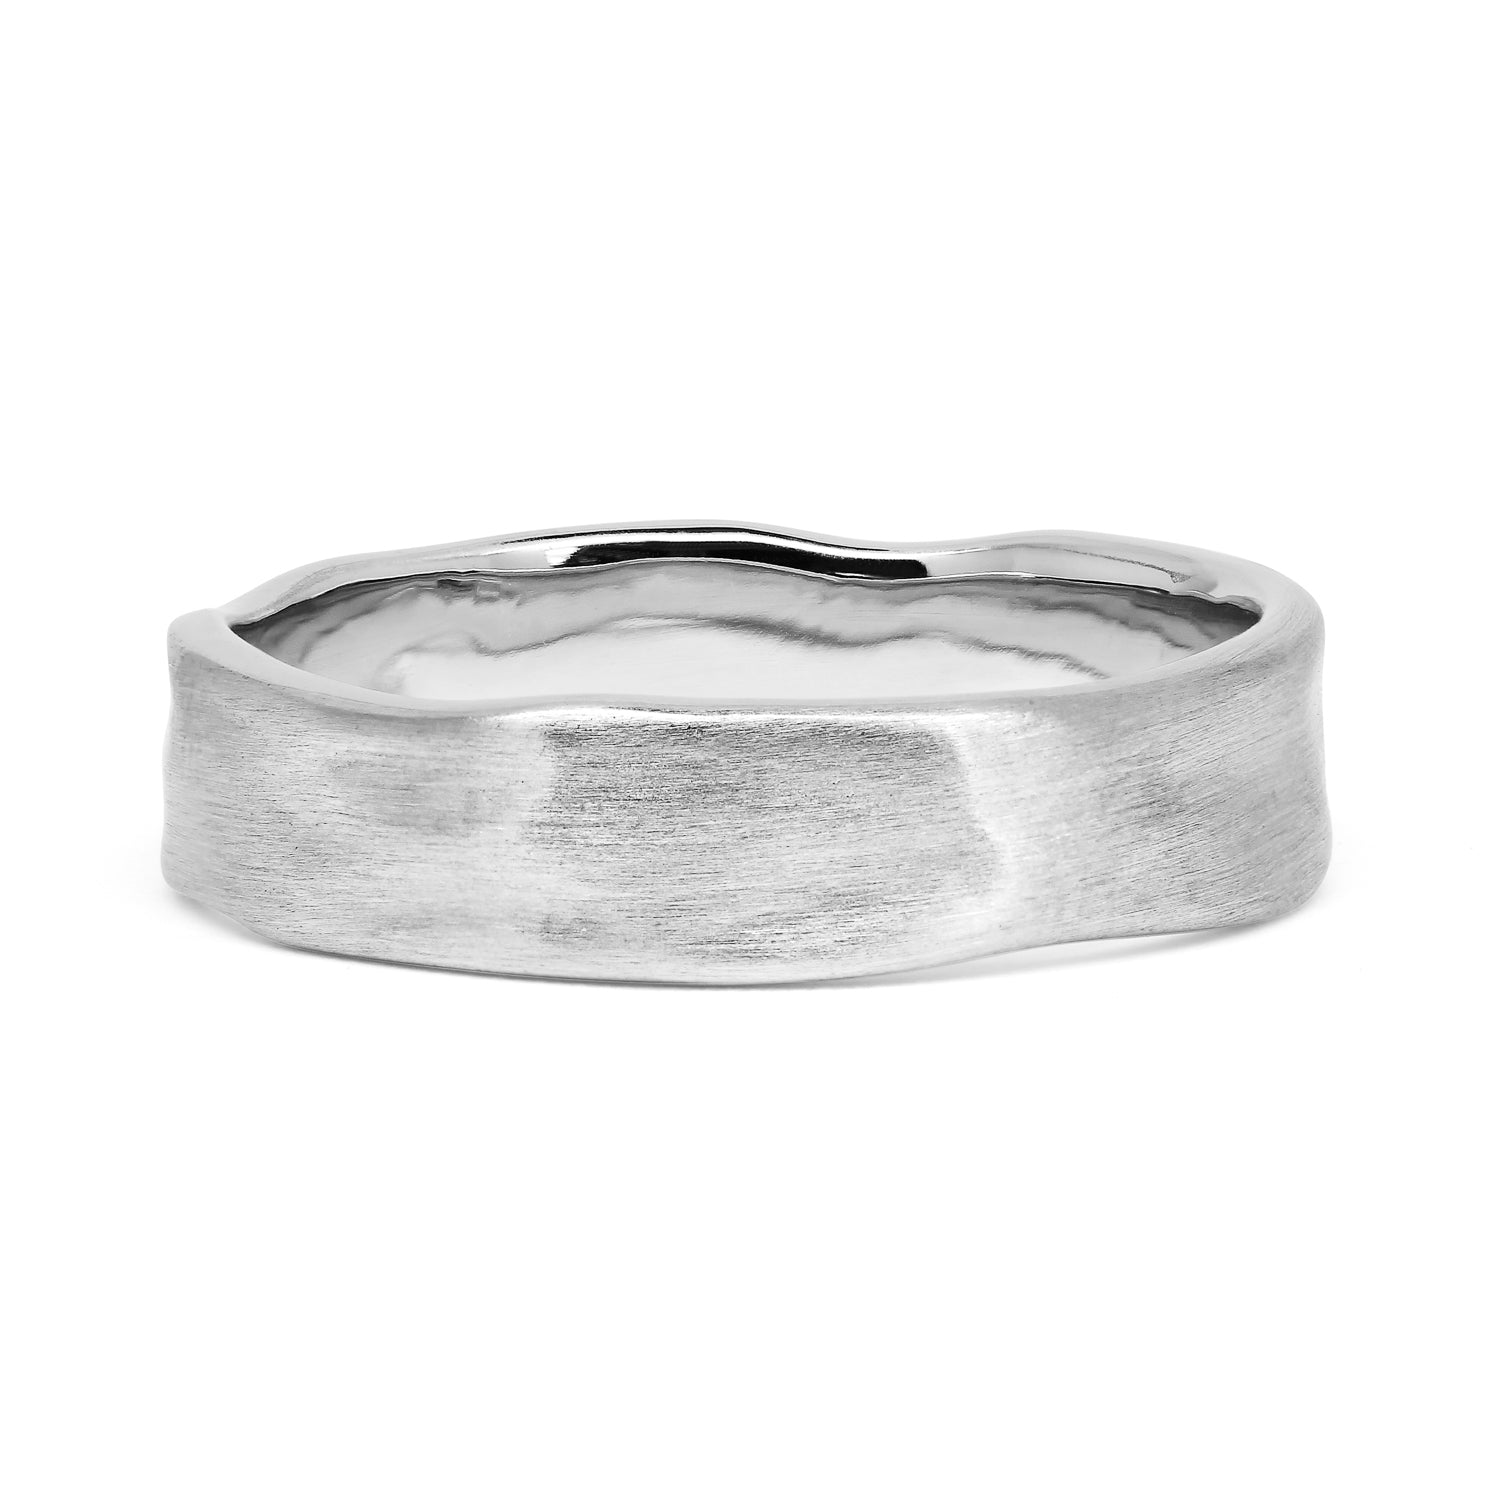 Bespoke Daniel Organic Wedding Ring